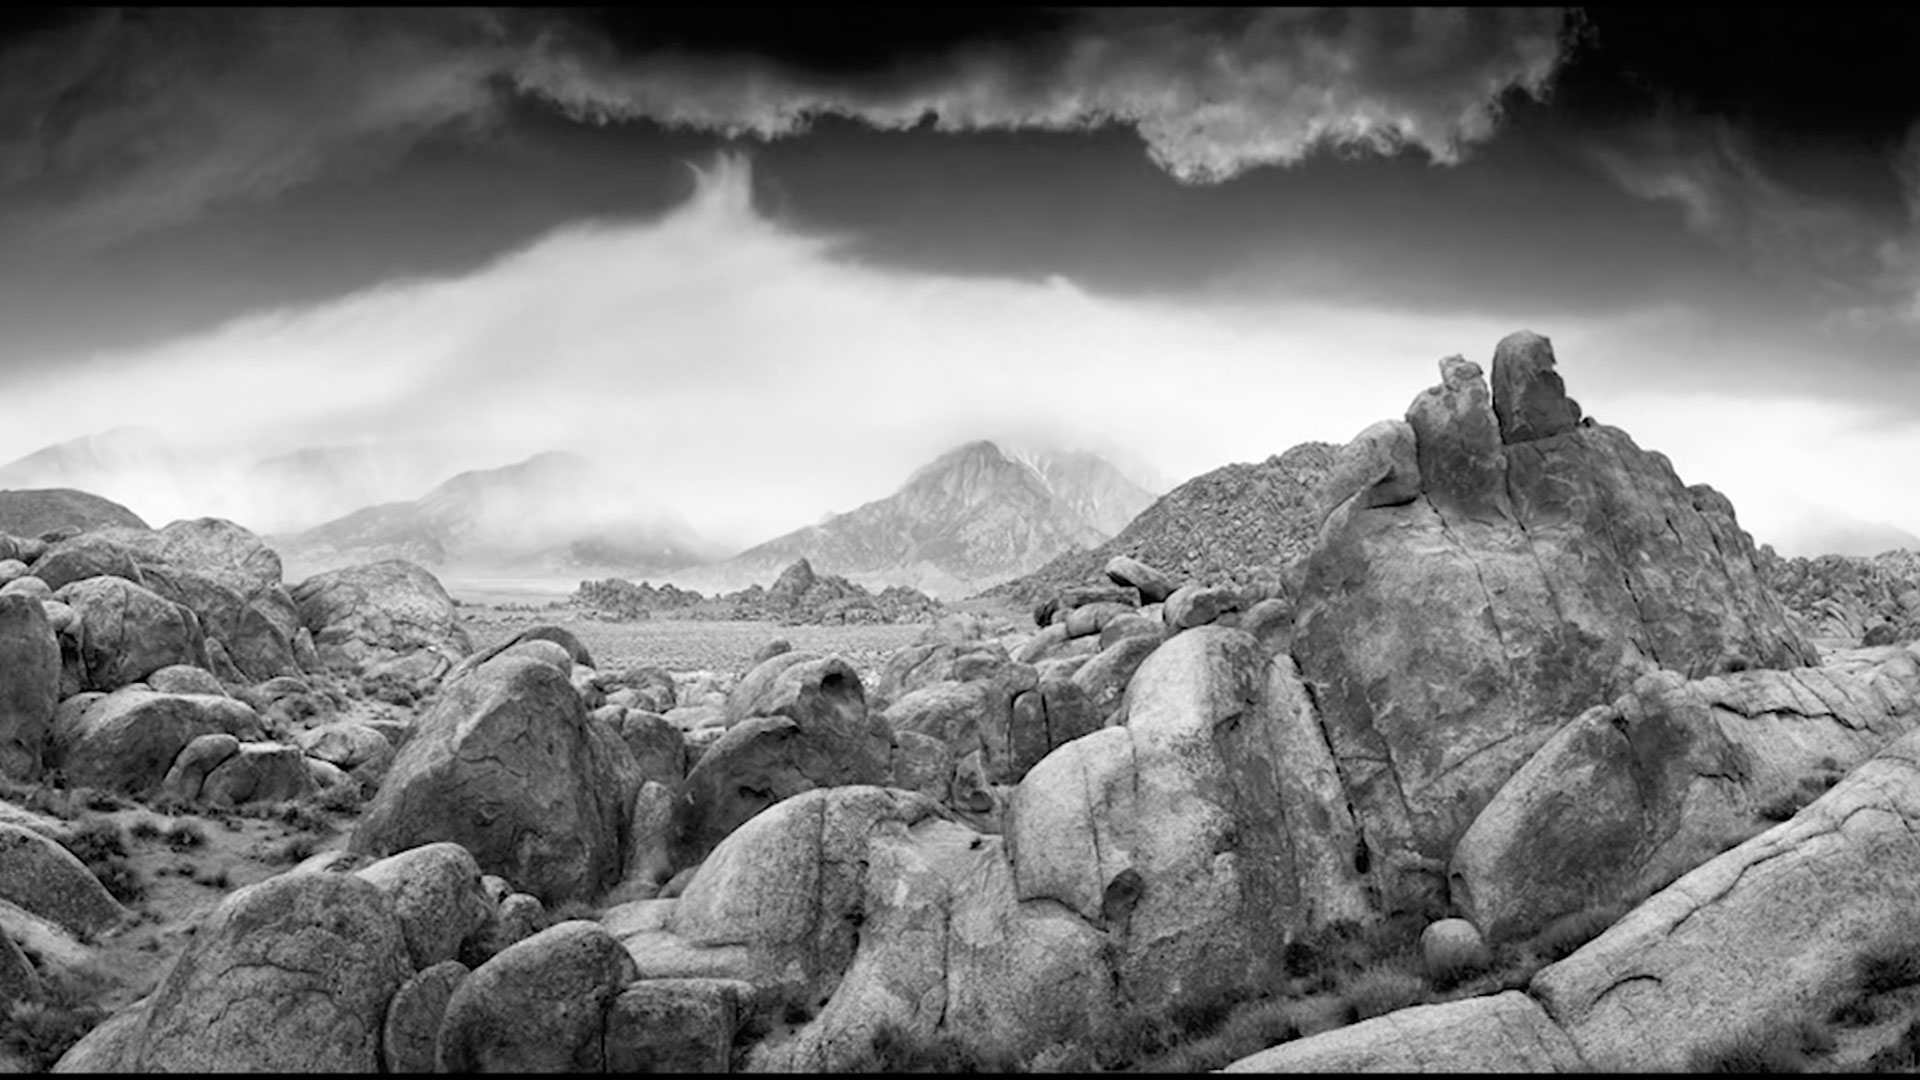 Explore Your Creativity With These 12 Composition Tips | Photofocus